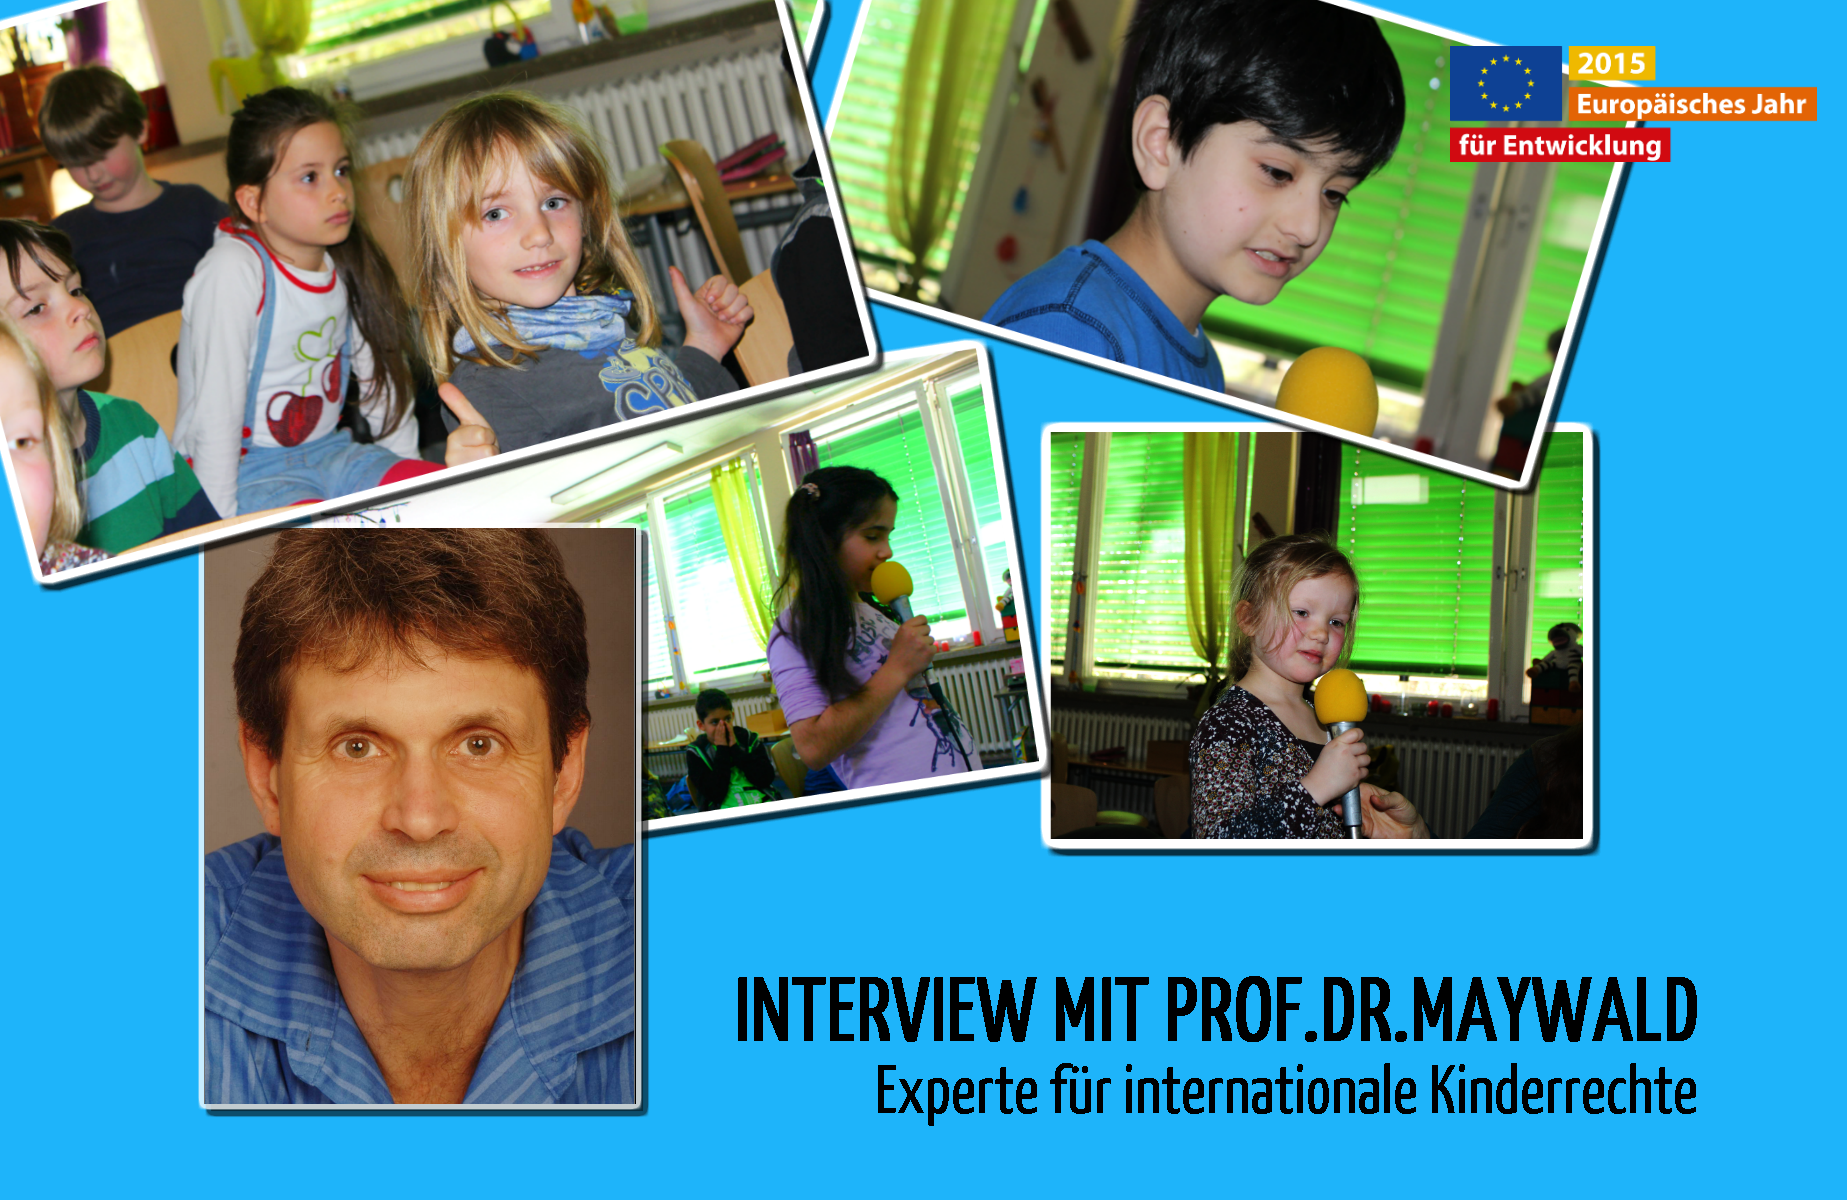 Interview mit Prof.Dr. Maywald